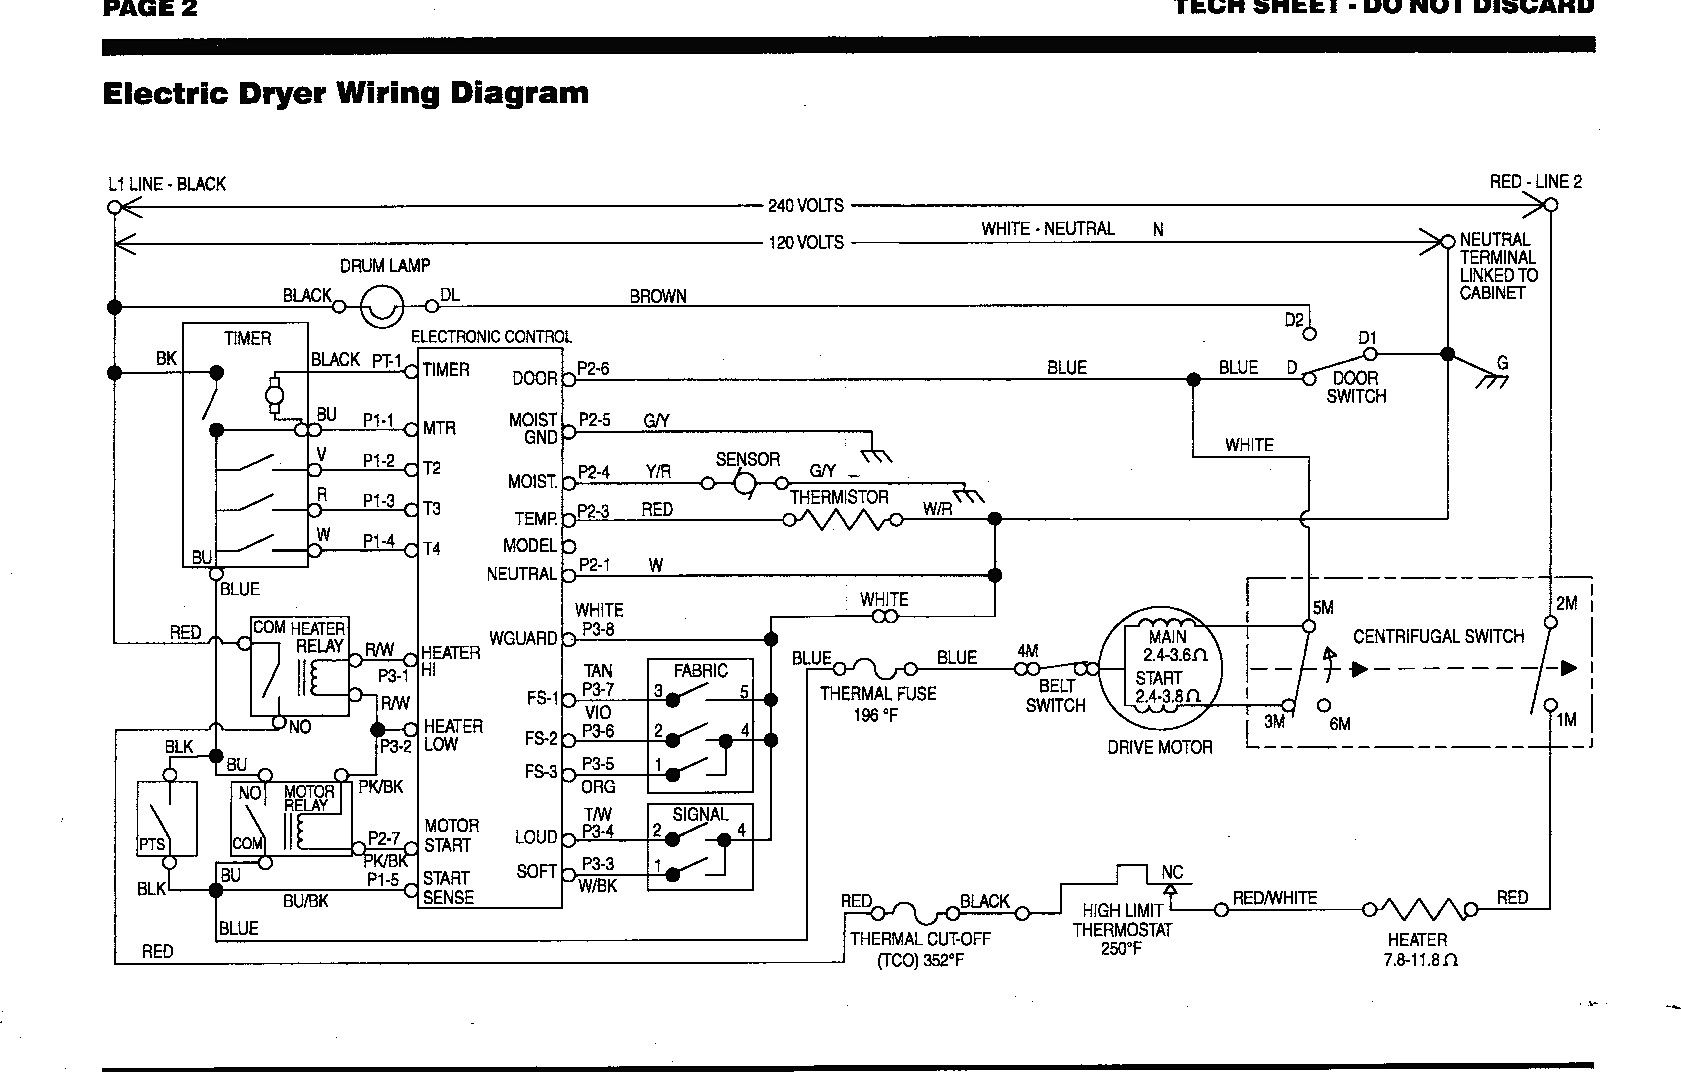 Kenmore Dryer Wiring Diagrams In 2020 Electric Dryers Maytag Dryer Gas Dryer